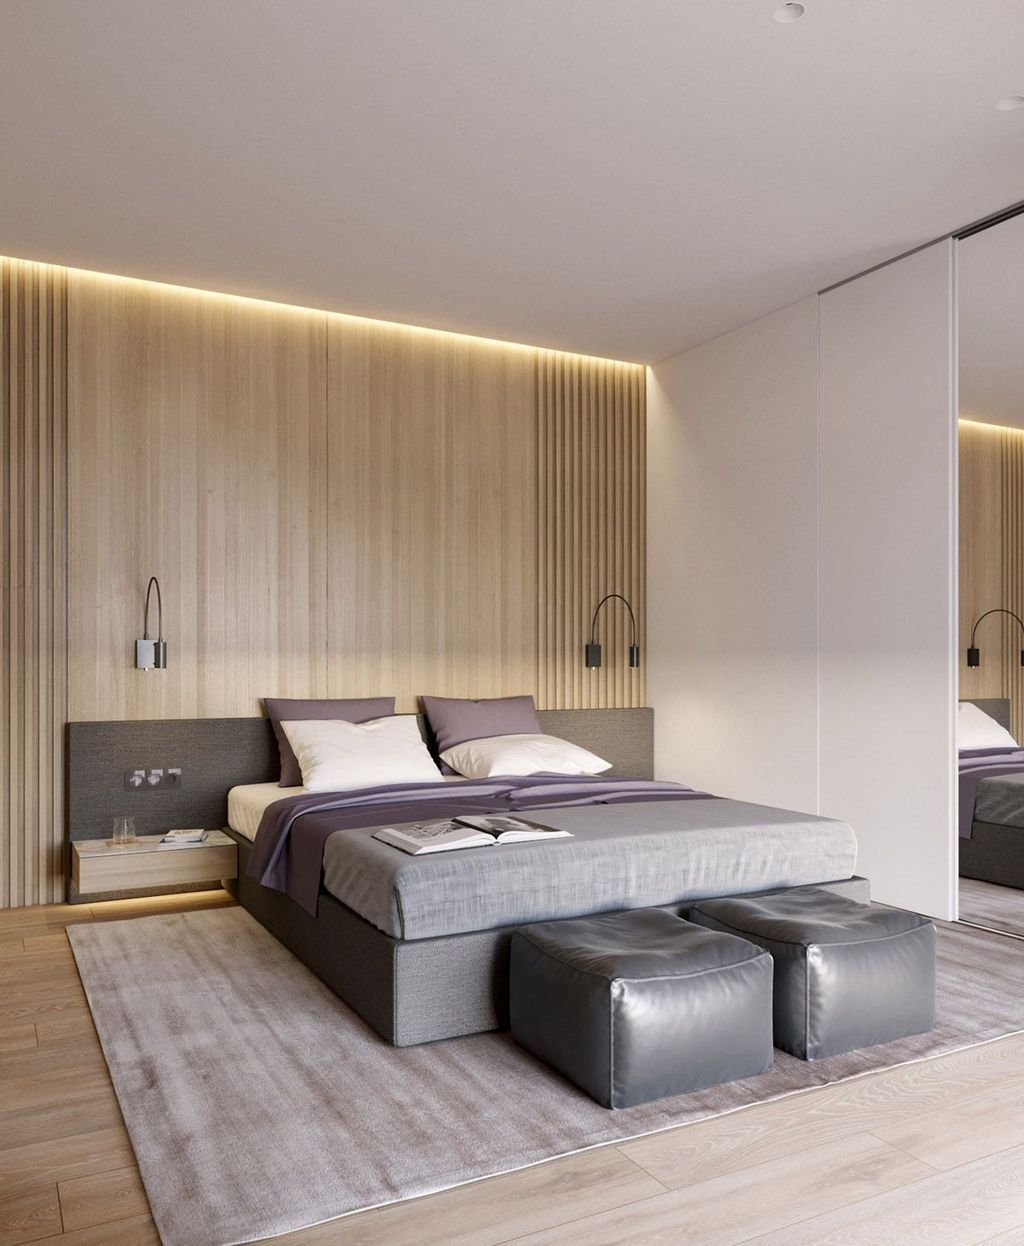 Bedroom Lighting Ideas Pinterest Modern Bedroom Lighting Ideas Diy